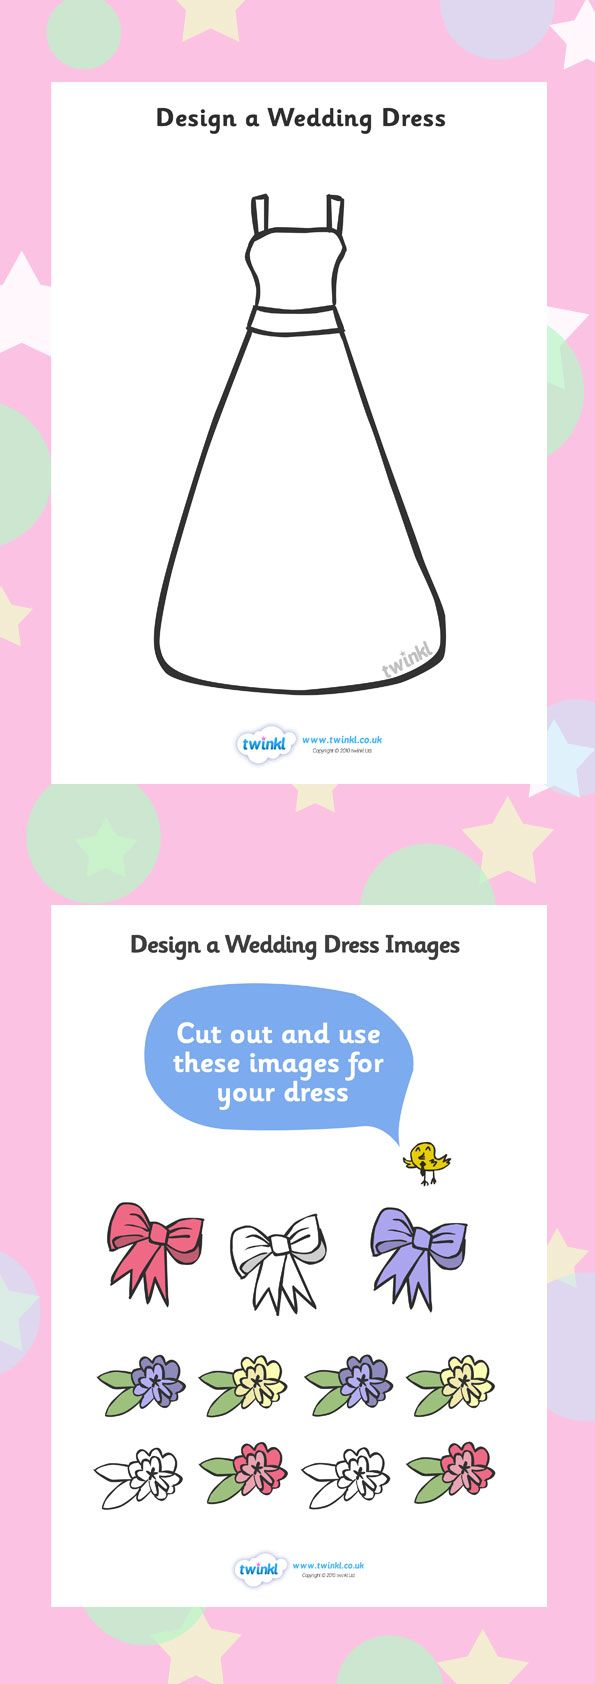 Design your wedding dress free  Design a Wedding Dress  Free download  Twinkl  Educational Tools